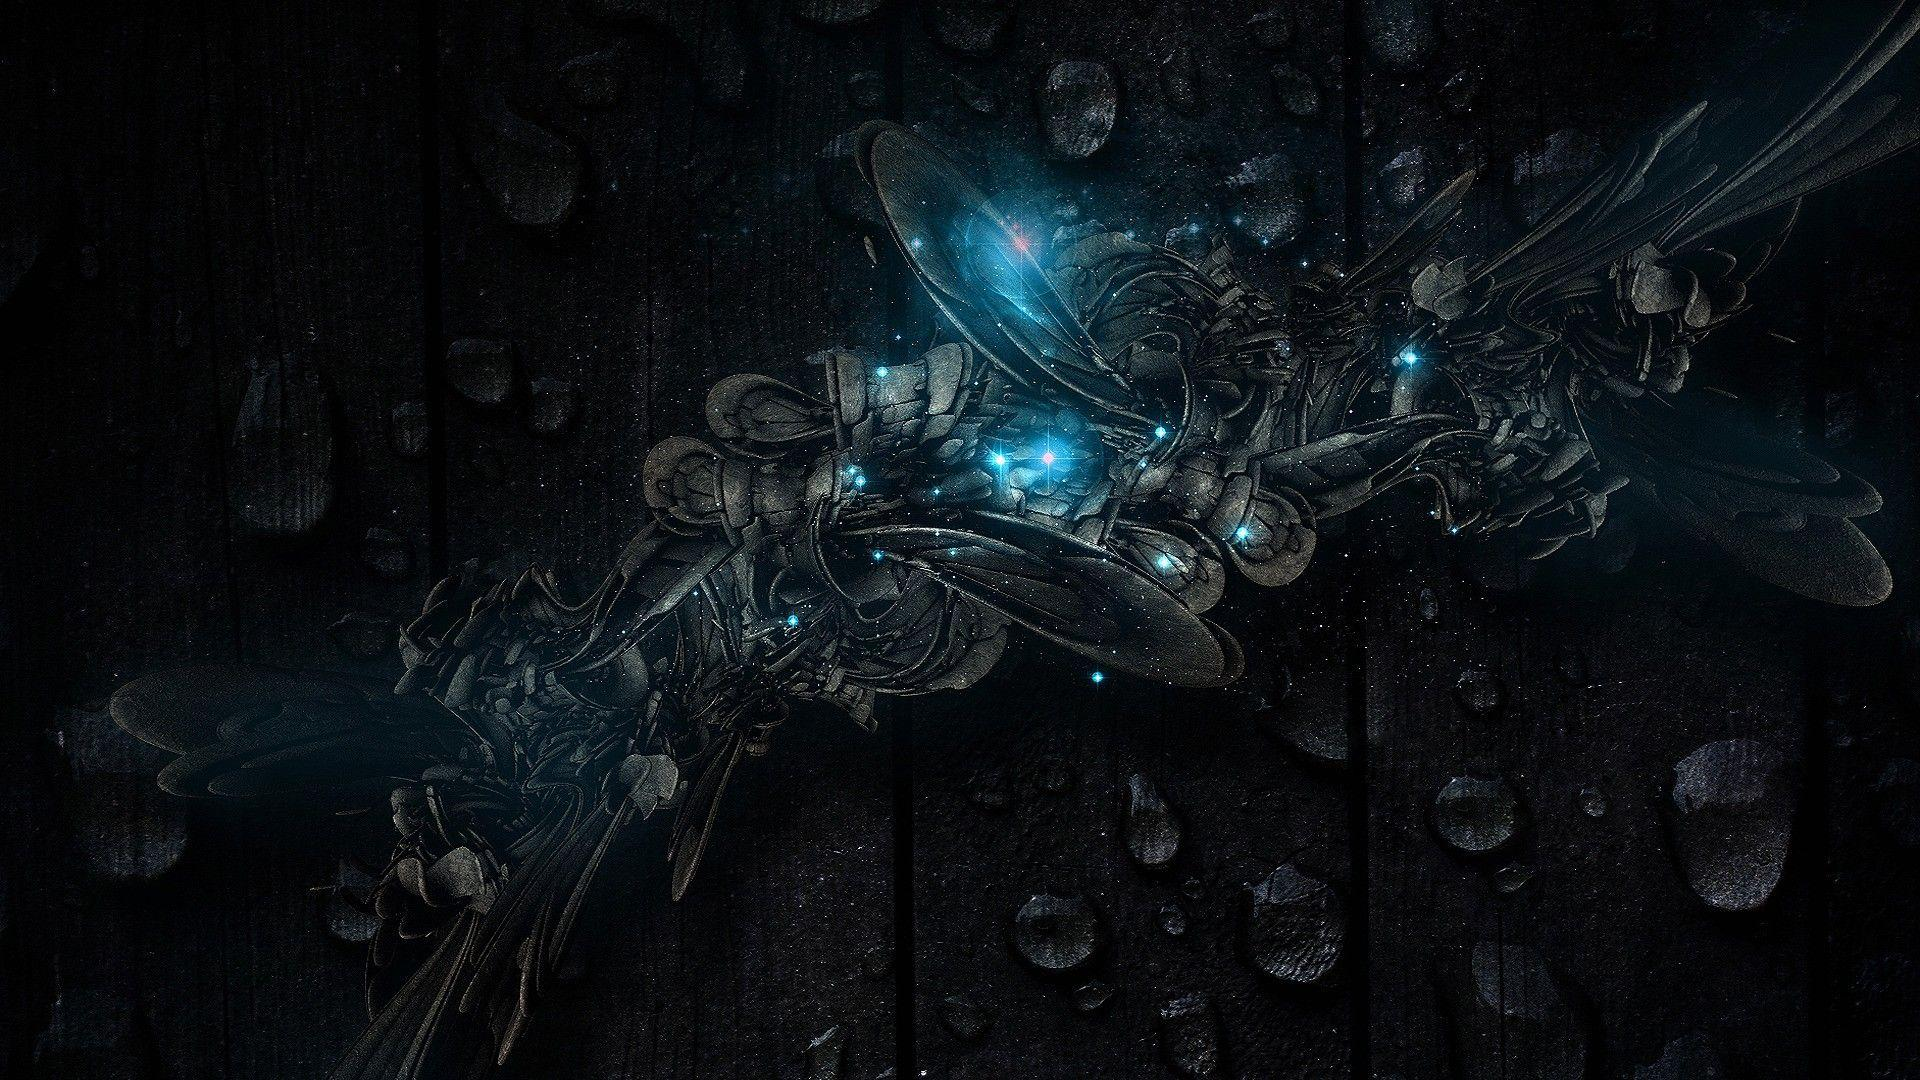 dark abstract technology wallpaper - photo #33